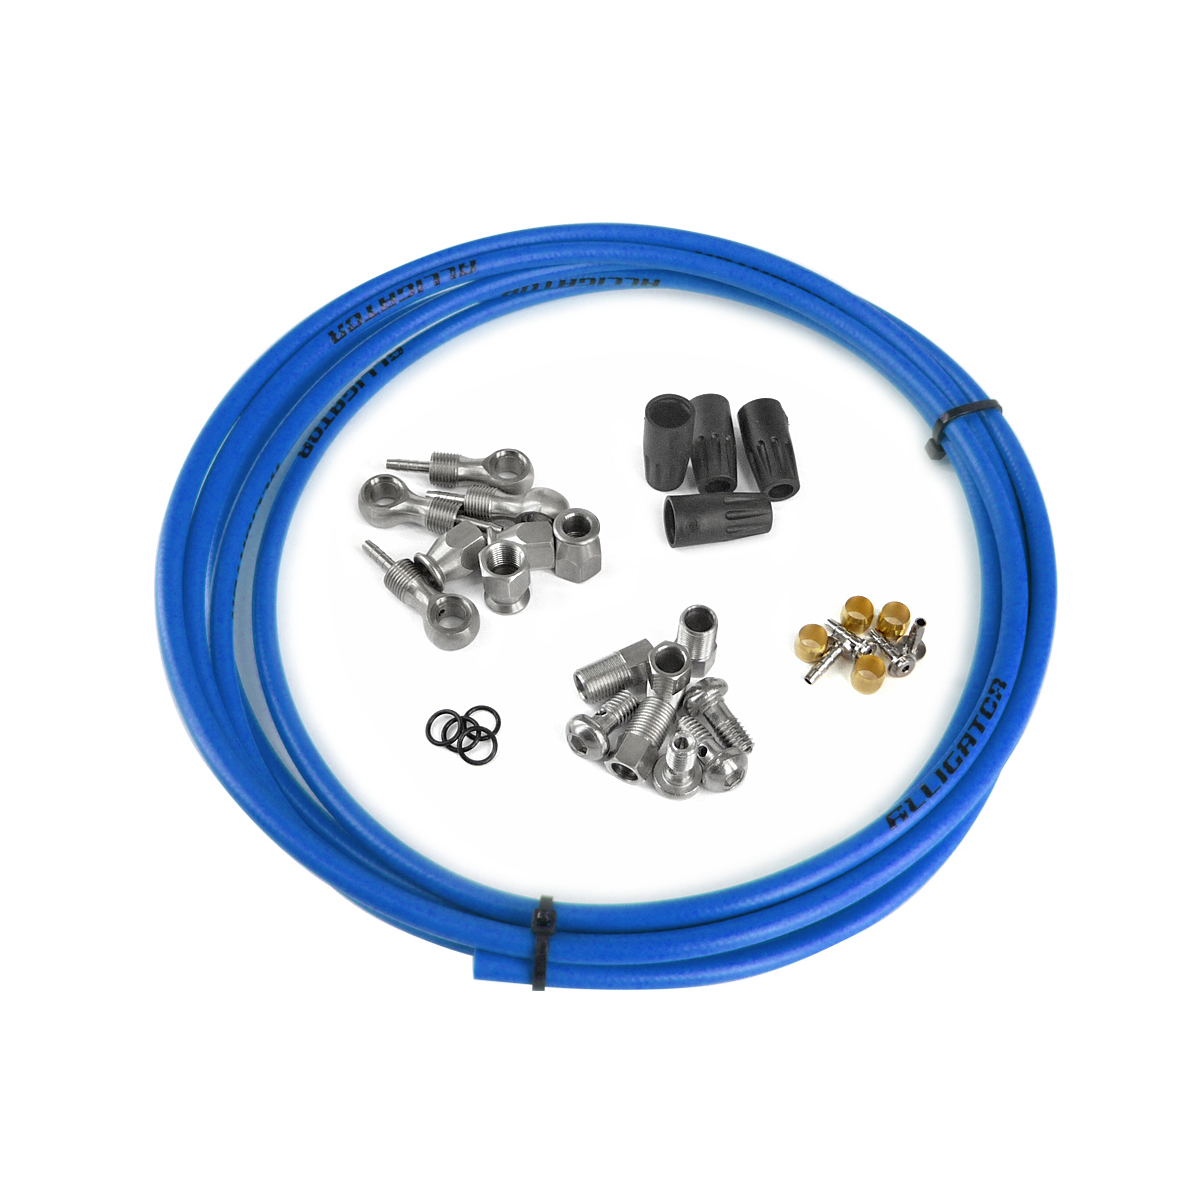 Kit complet durite frein hydraulique universel bleu